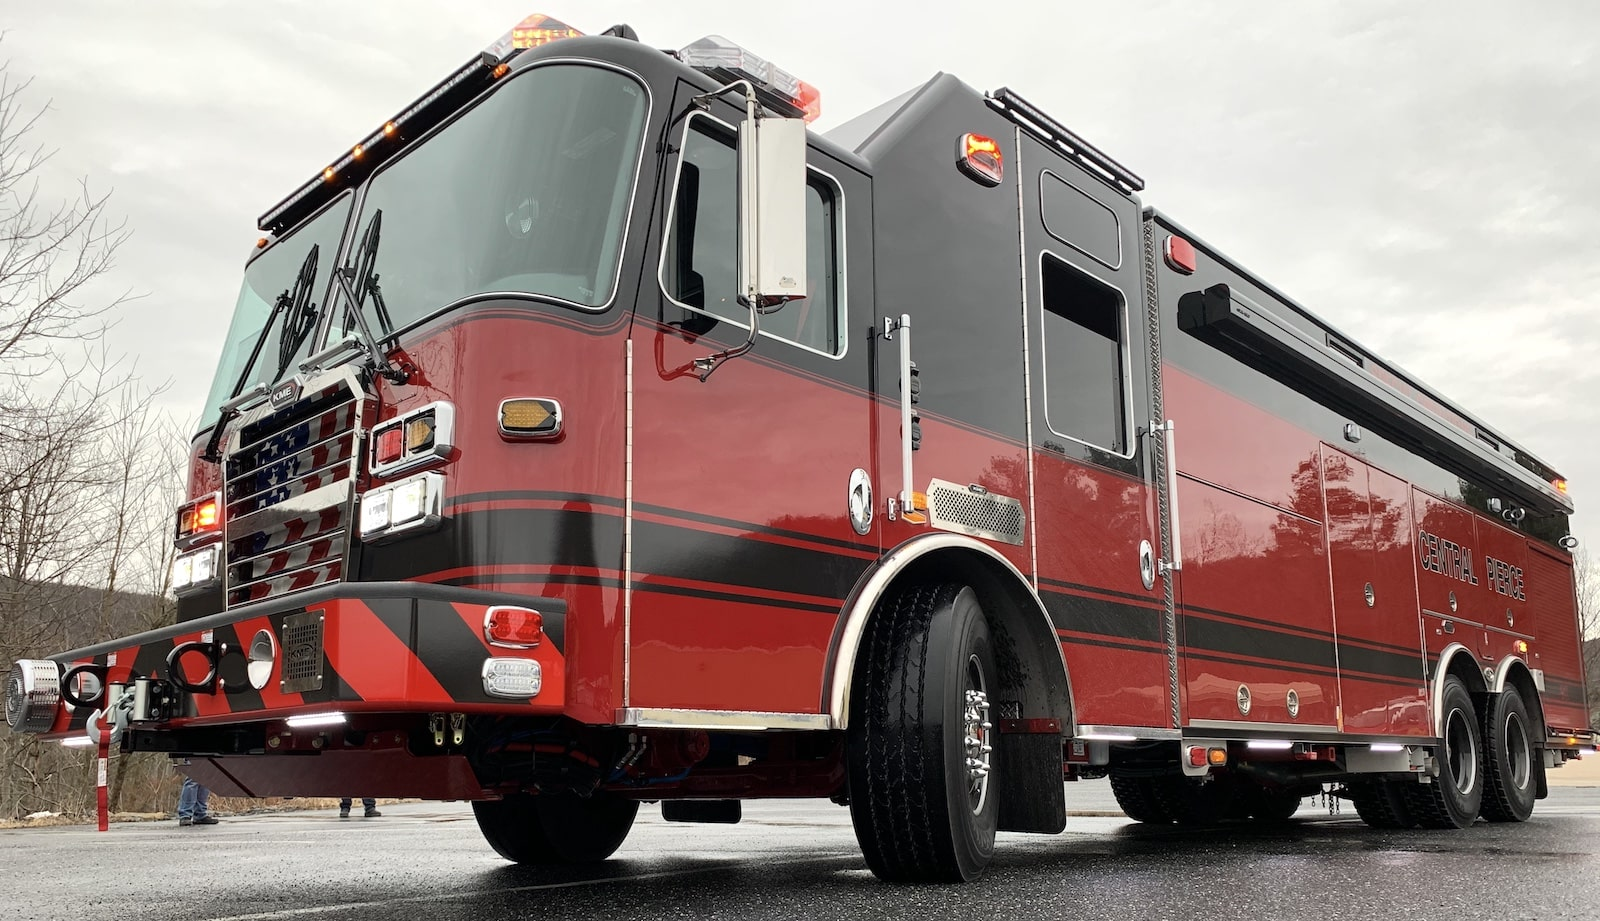 In March 2020, Central Pierce Fire and Rescue, Washington, took delivery of an $800,000 Rescue 61 (GSO 11050) from KME thanks to an AFG grant